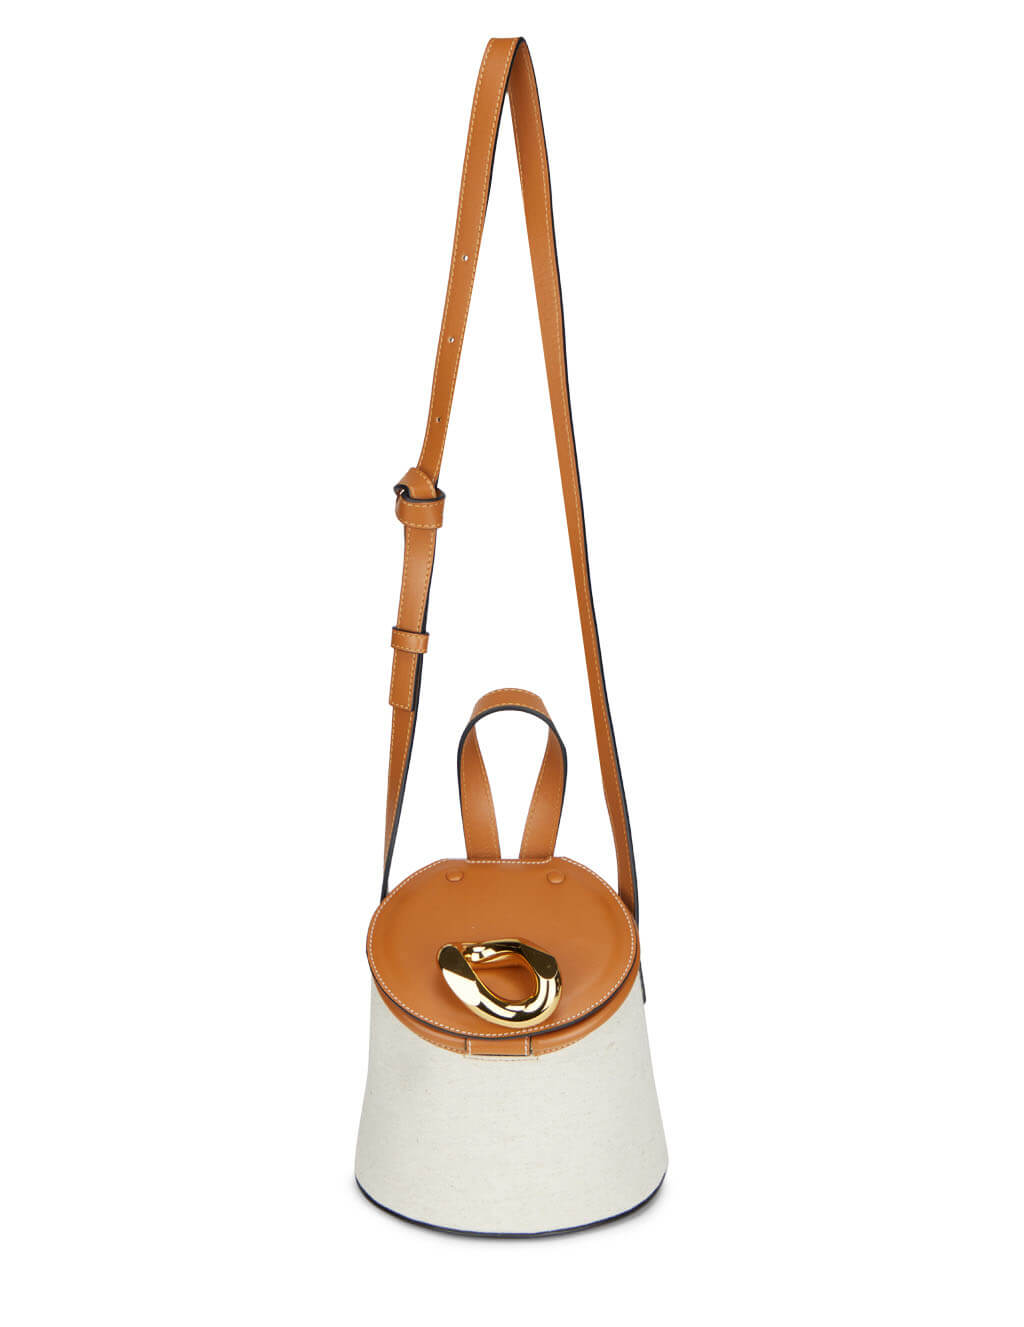 Women's JW Anderson Lid Bucket Bag in Calico - HB0318FA0038110